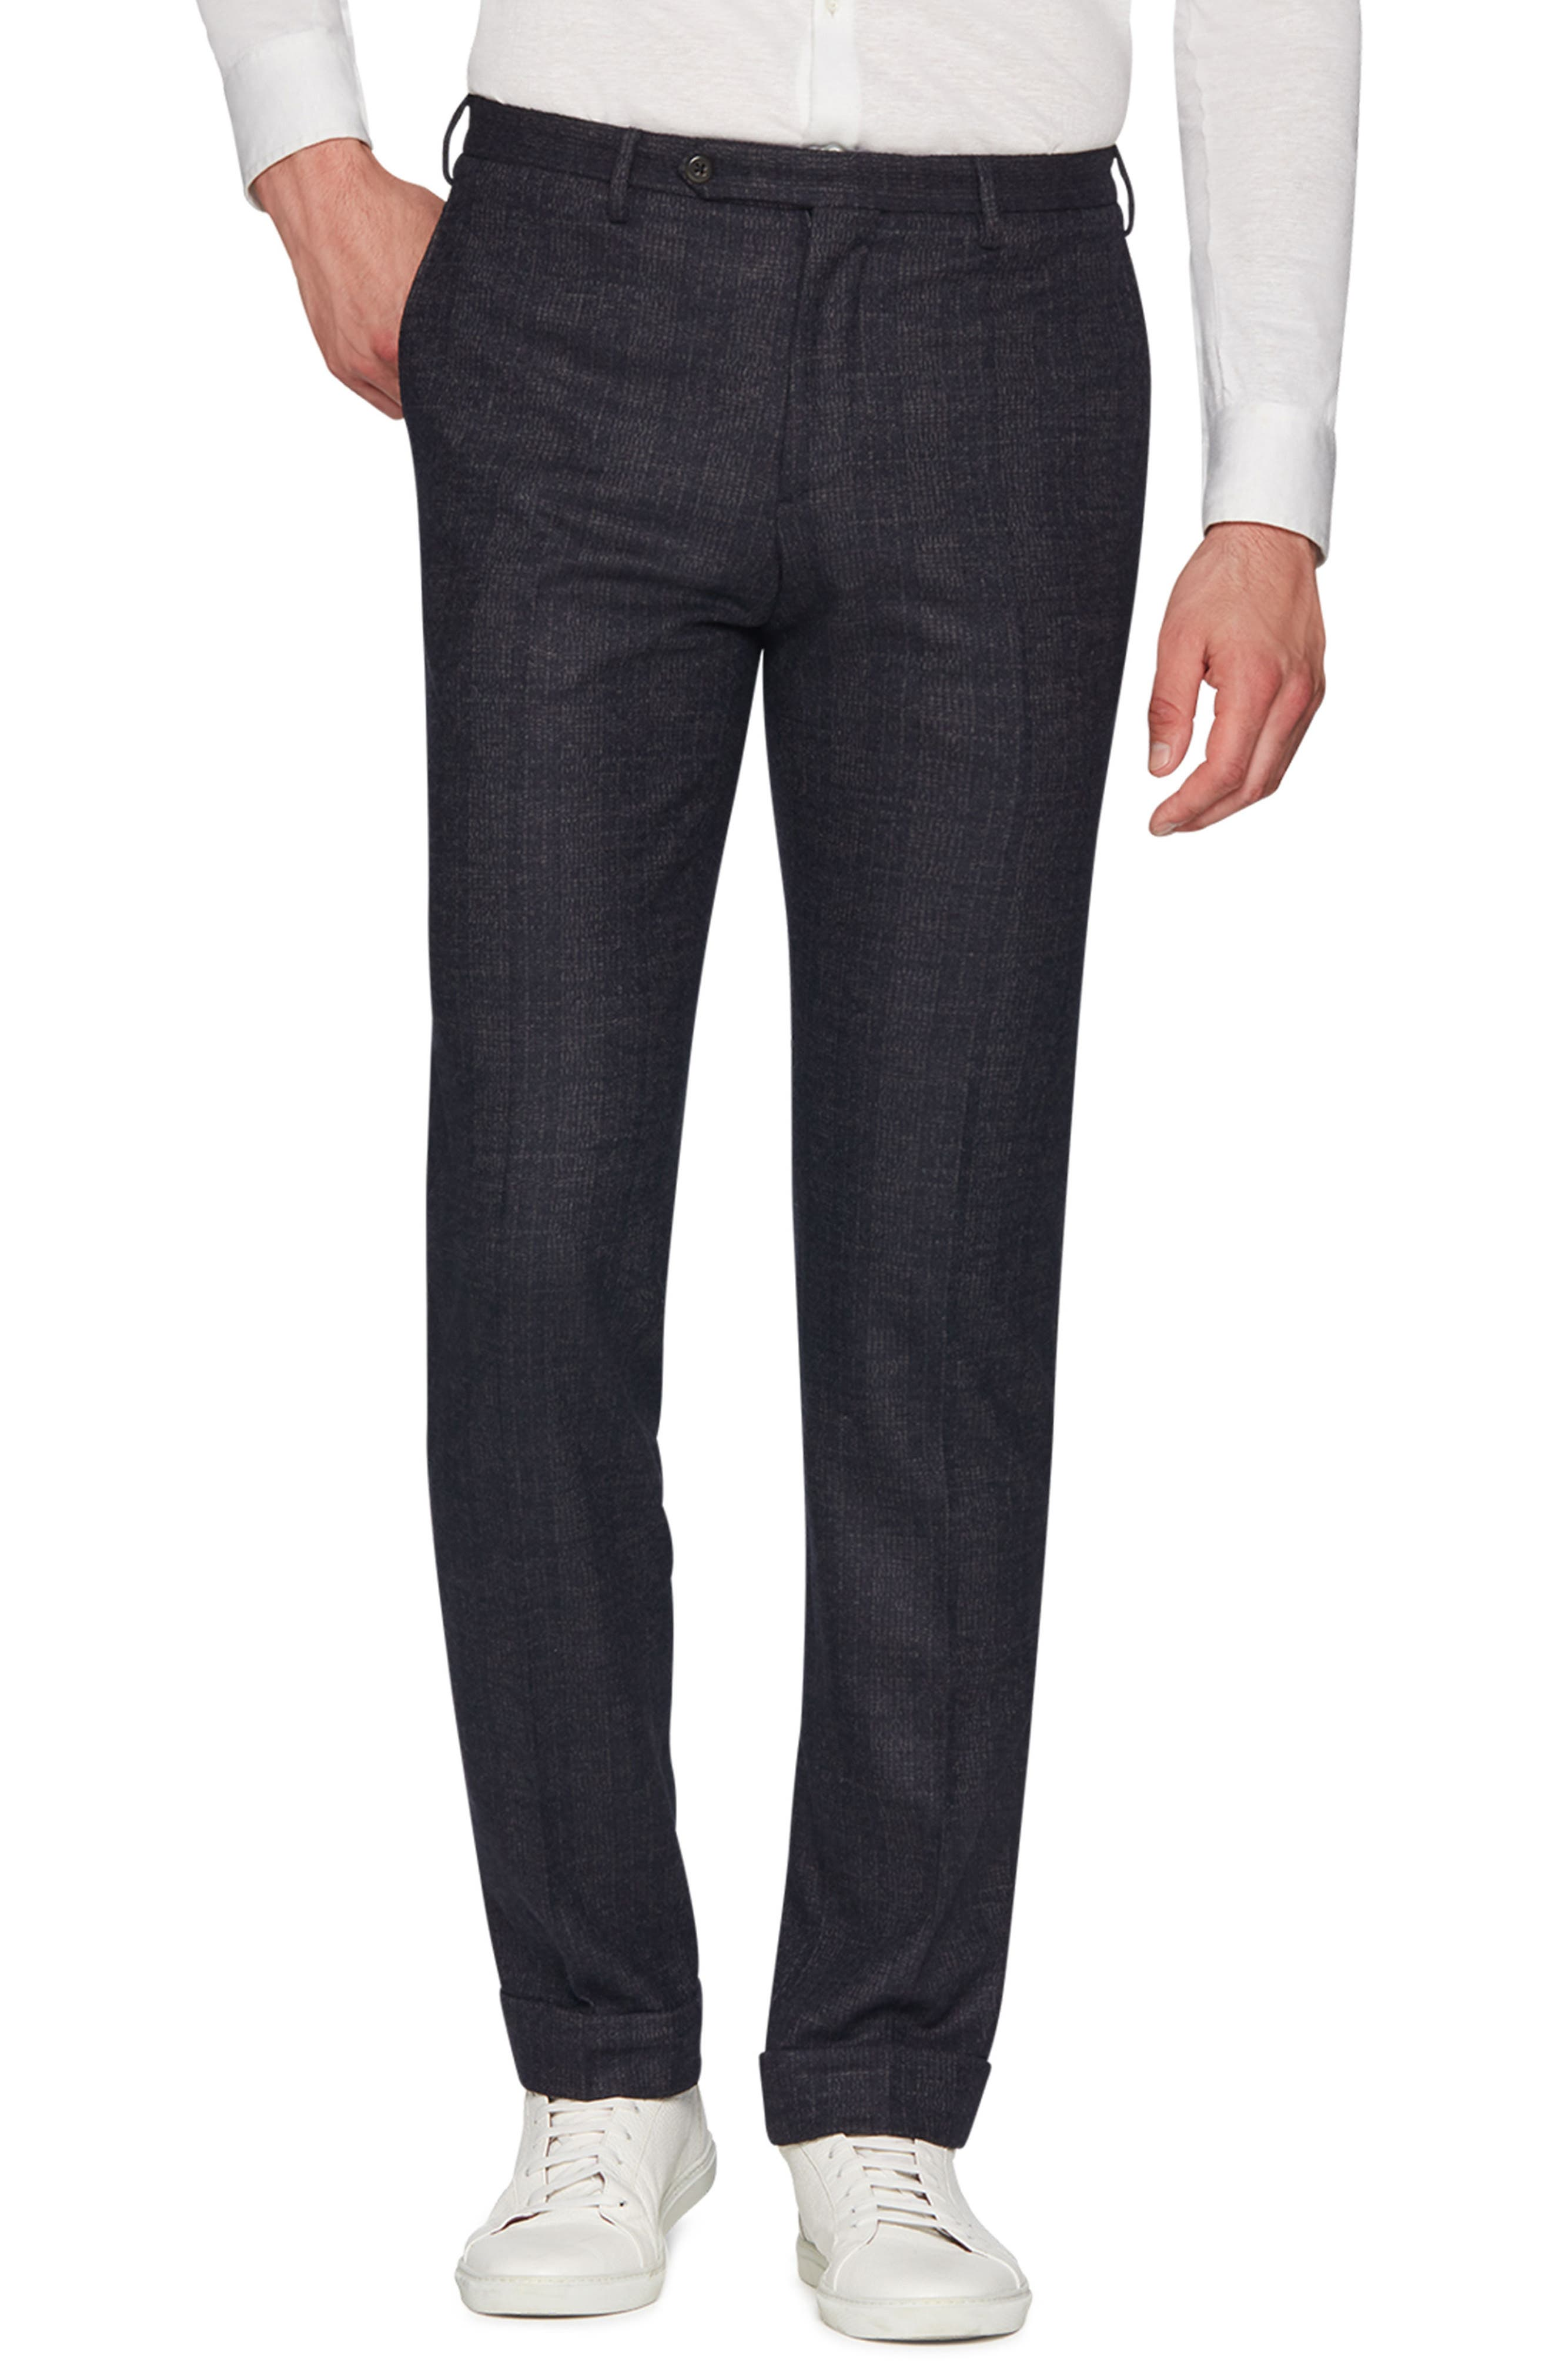 Josh Wool Blend Jersey Trousers,                             Main thumbnail 1, color,                             NAVY